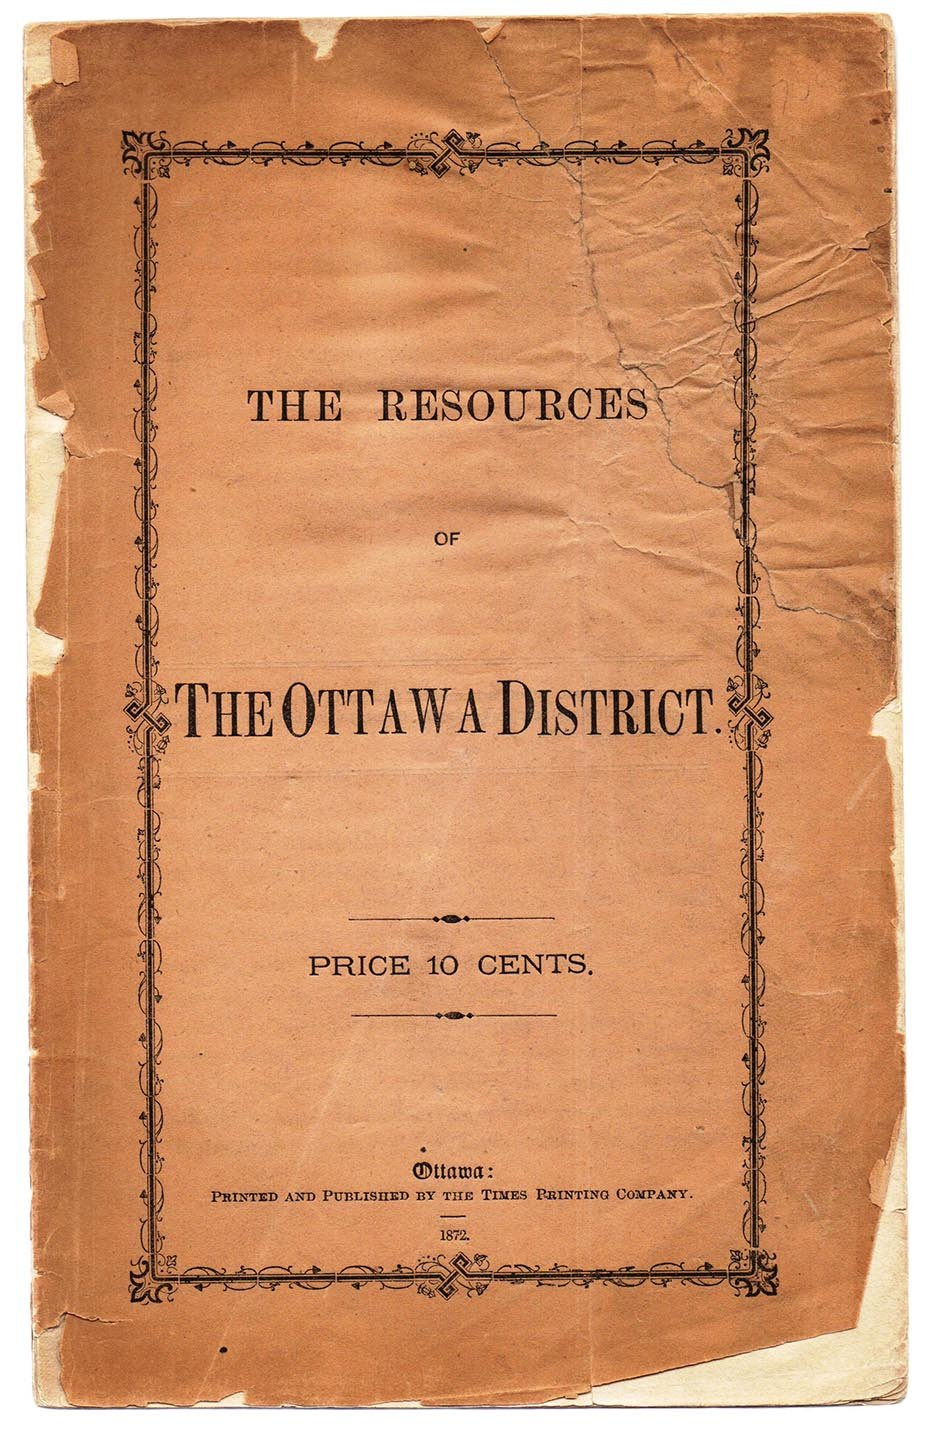 The Resources of the Ottawa District